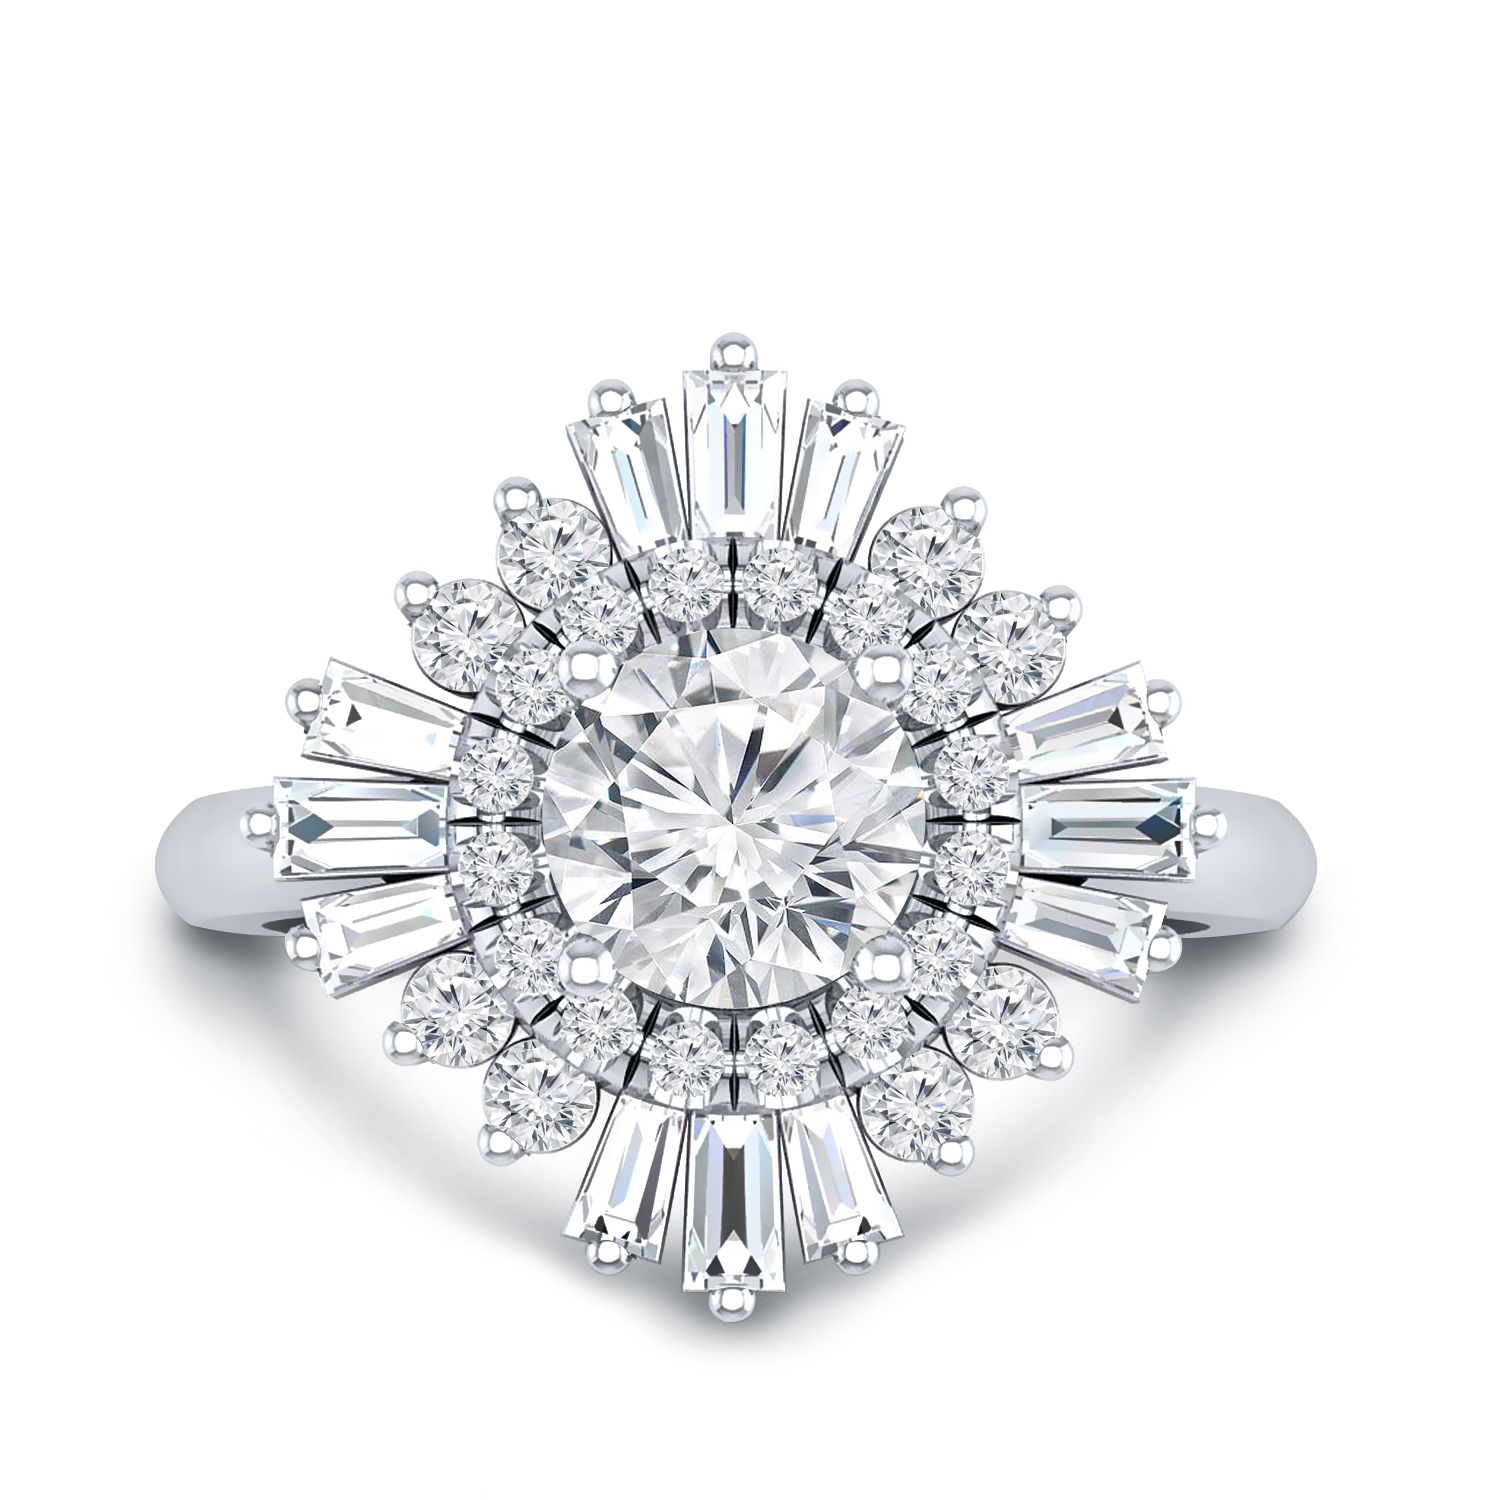 CHARLESTON Ballerina Halo Moissanite Engagement Ring In 14K White Gold With 0.50 Carat Round Stone